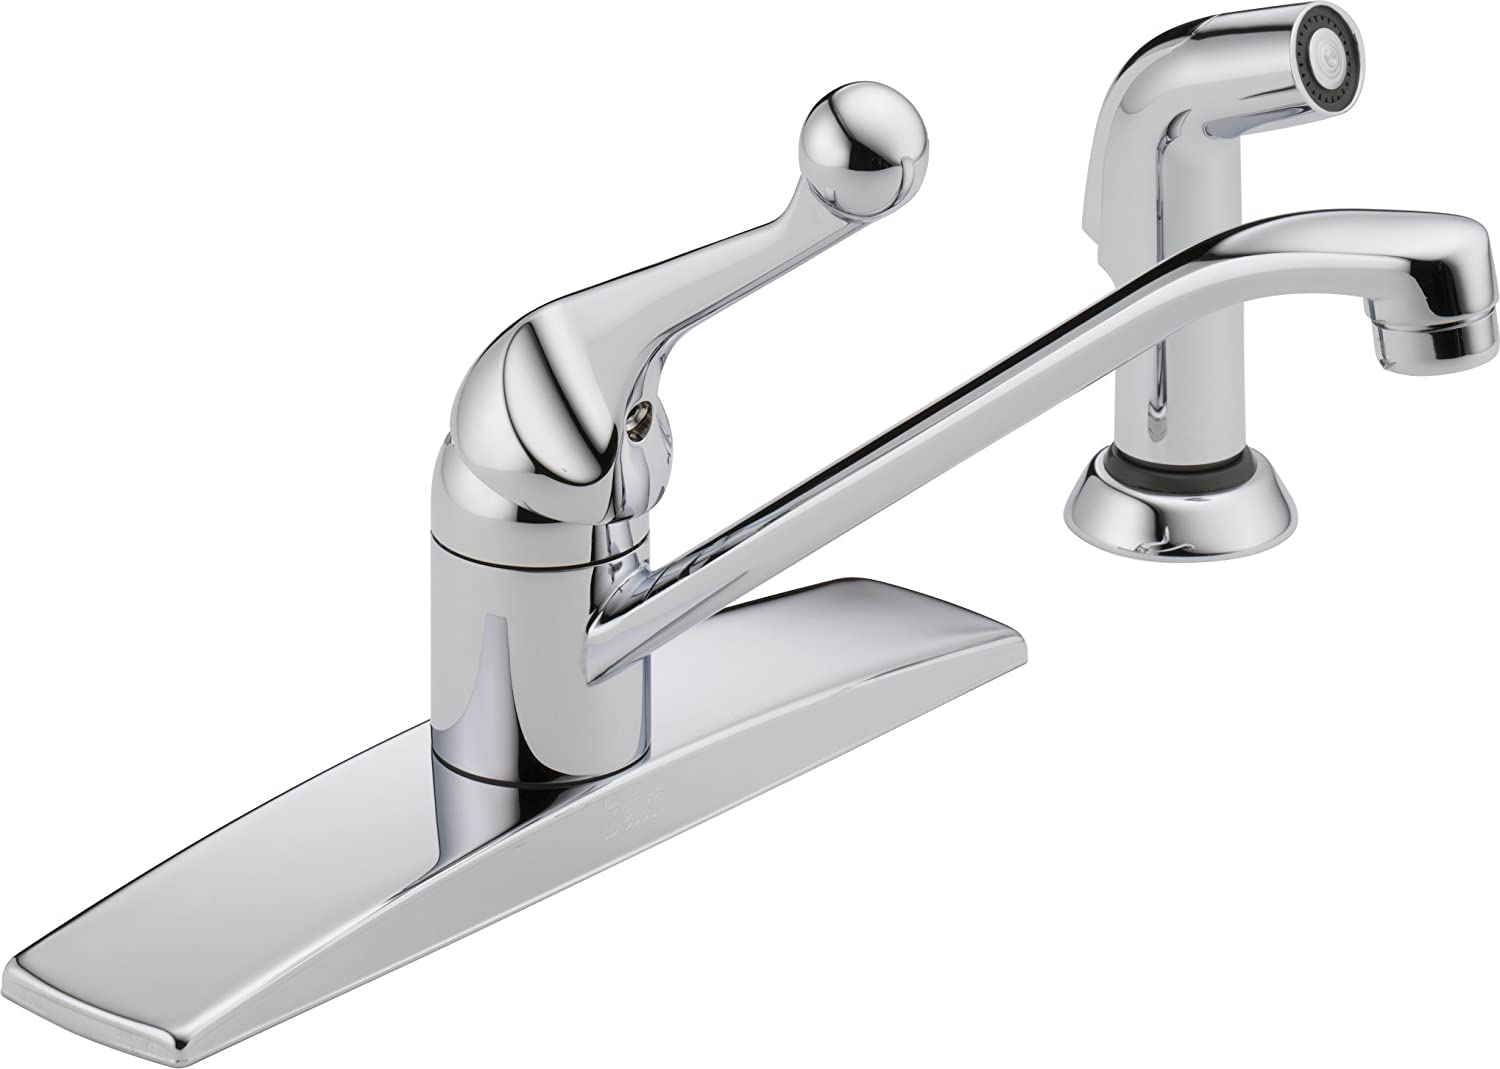 Delta 400LF WF Classic Single Handle Kitchen Faucet With Matching Side  Sprayer, Chrome   Touch On Kitchen Sink Faucets   Amazon.com